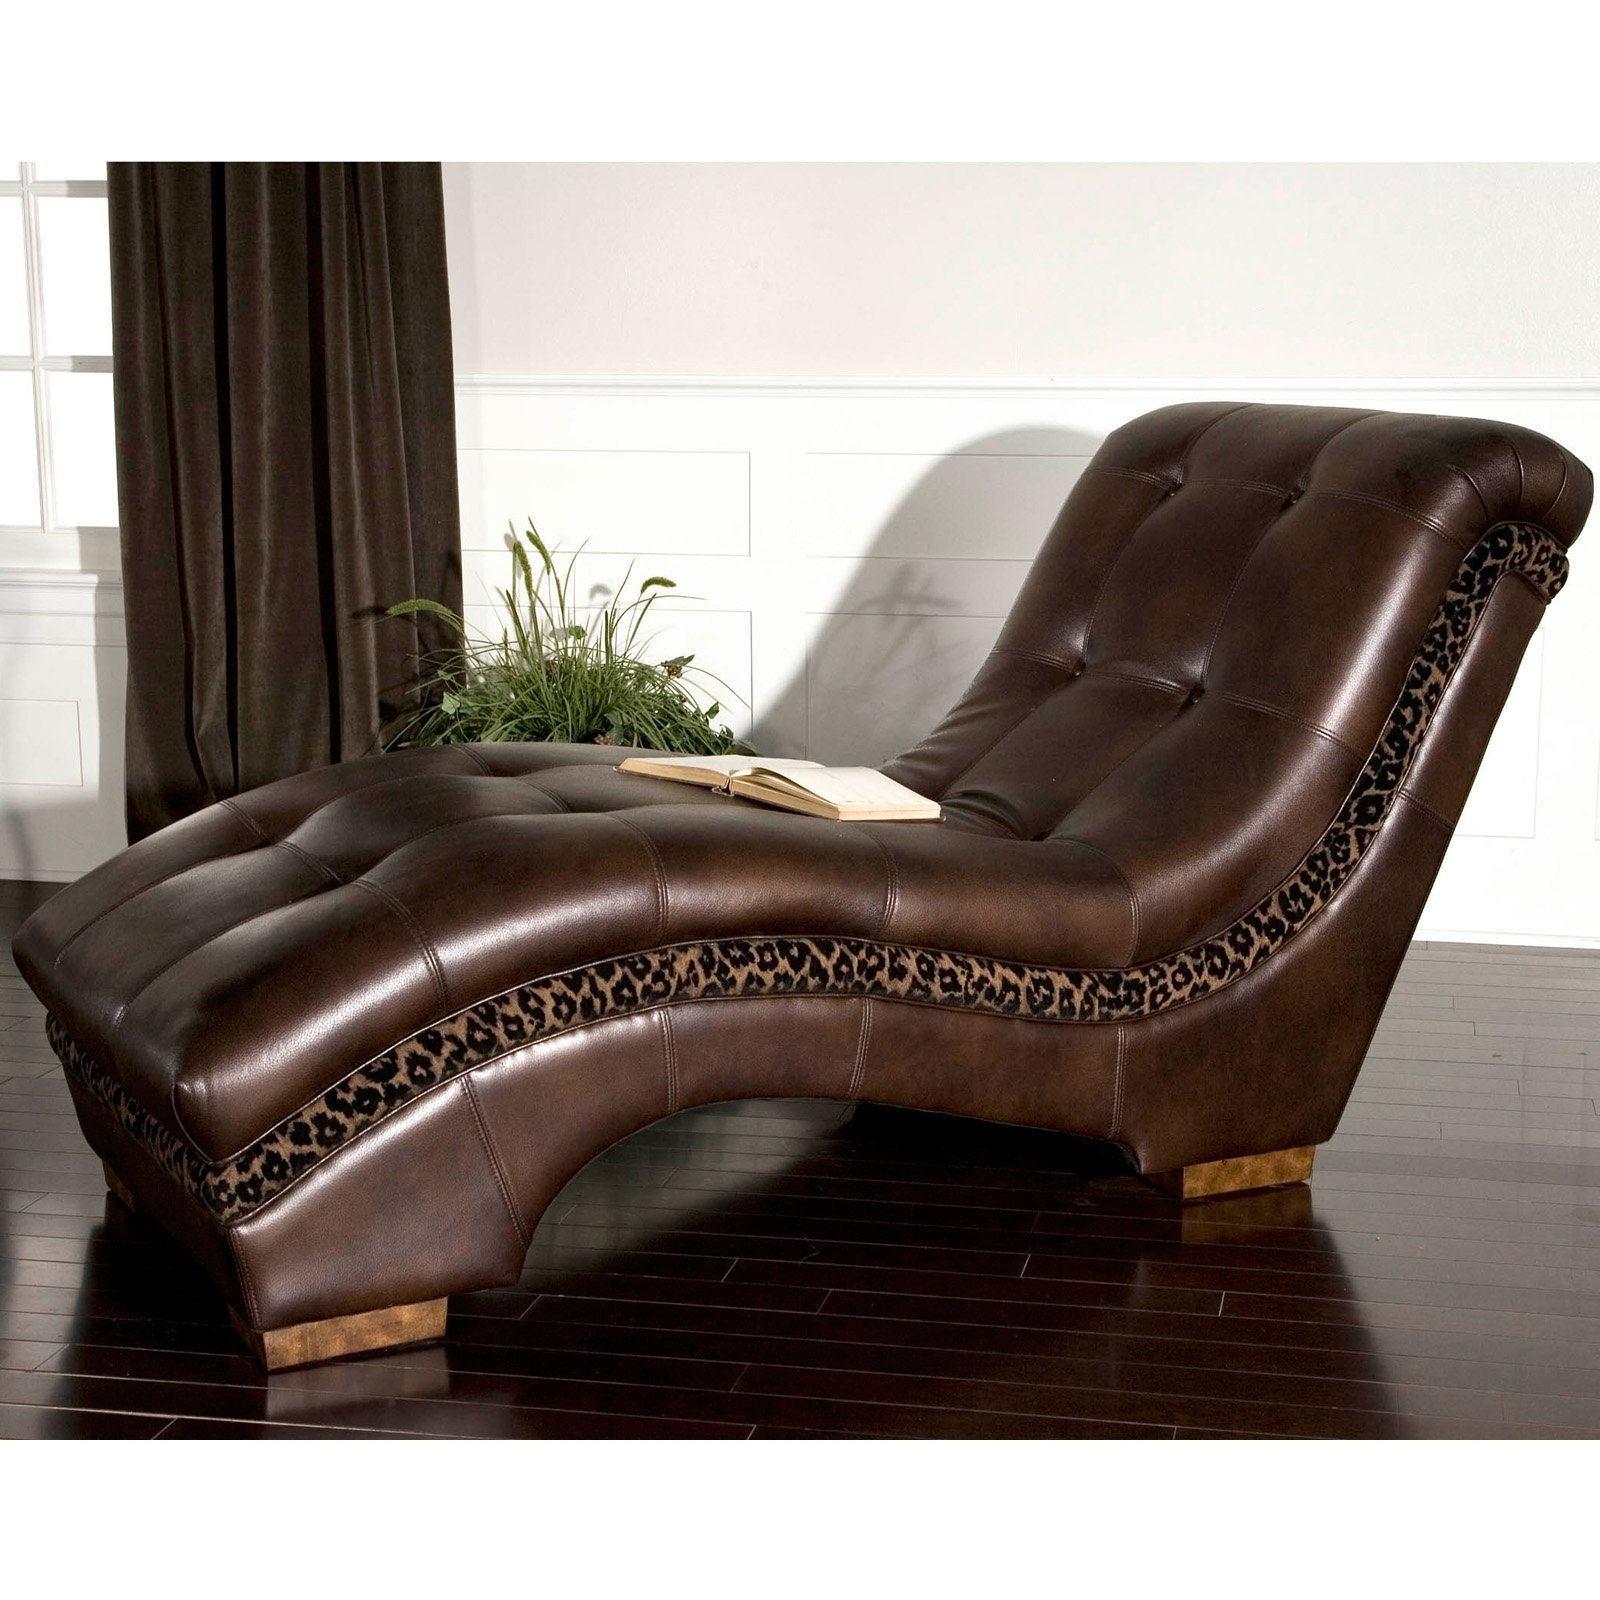 Zebra Print Chaise Lounge Chairs In Trendy Brown Chaise Lounge – Brown Zebra Print Chaise Lounge, Brown (View 10 of 15)